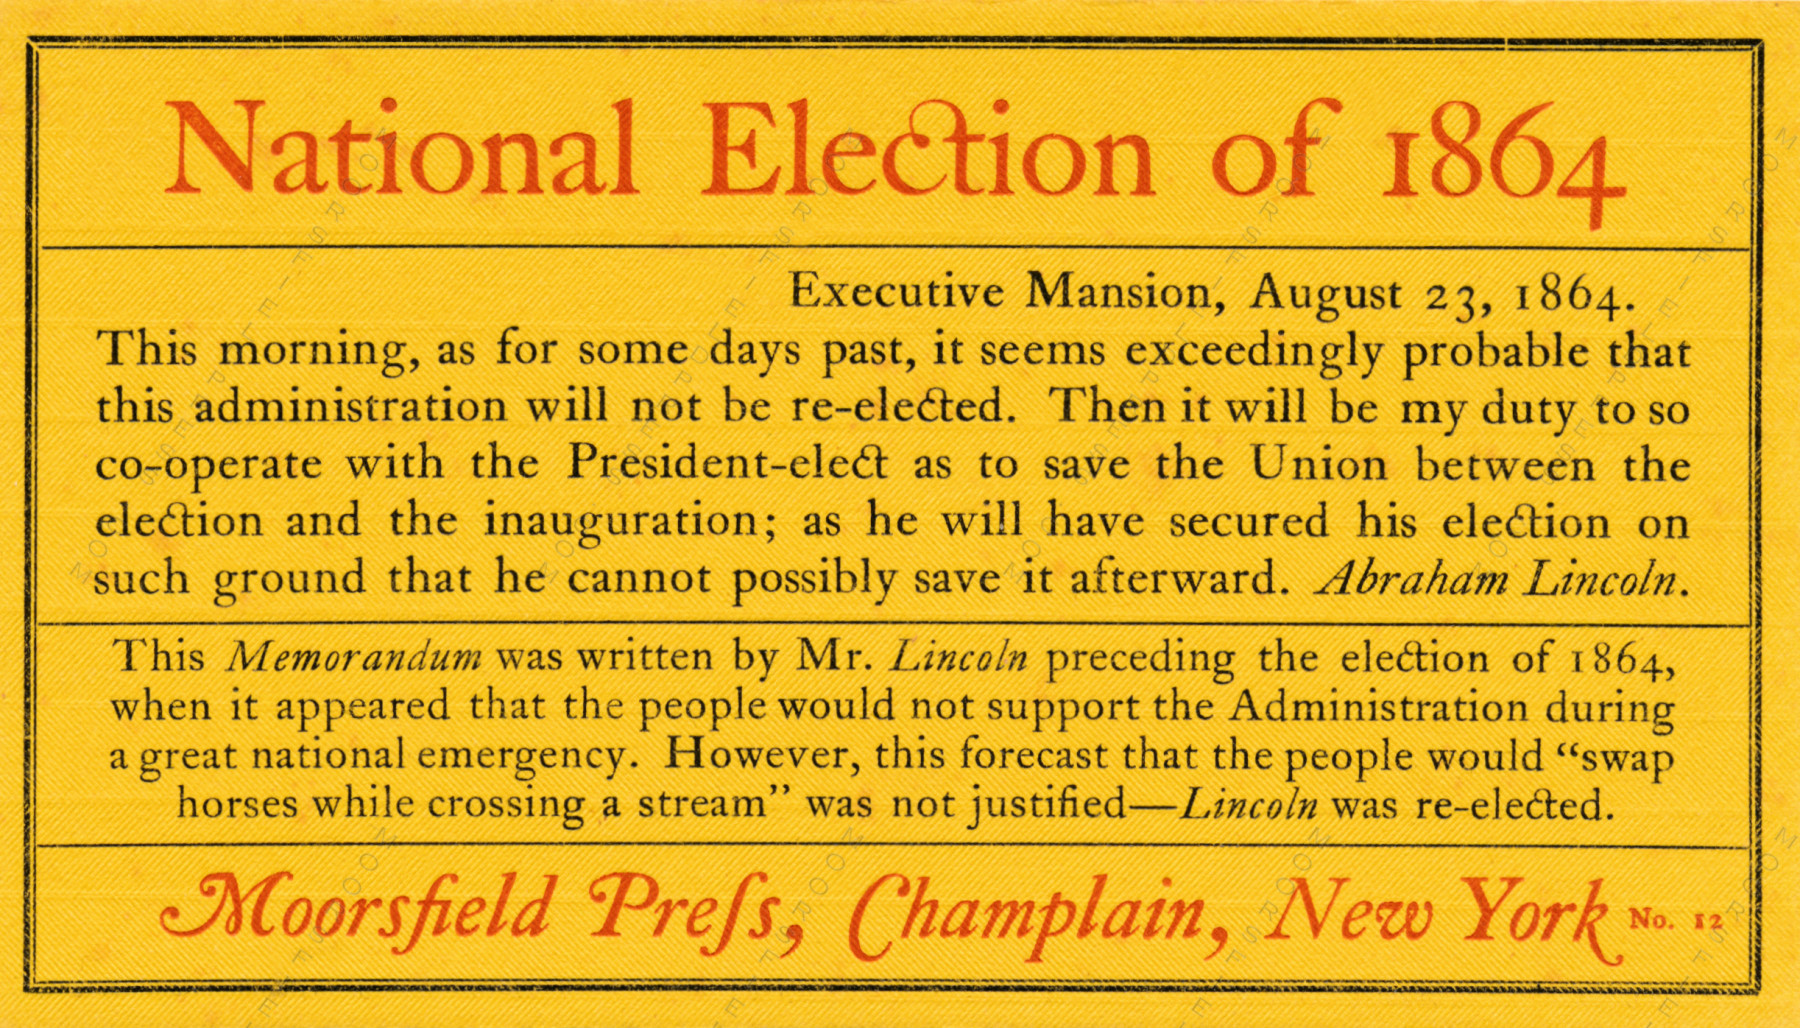 moorsfield_press=yellow_information